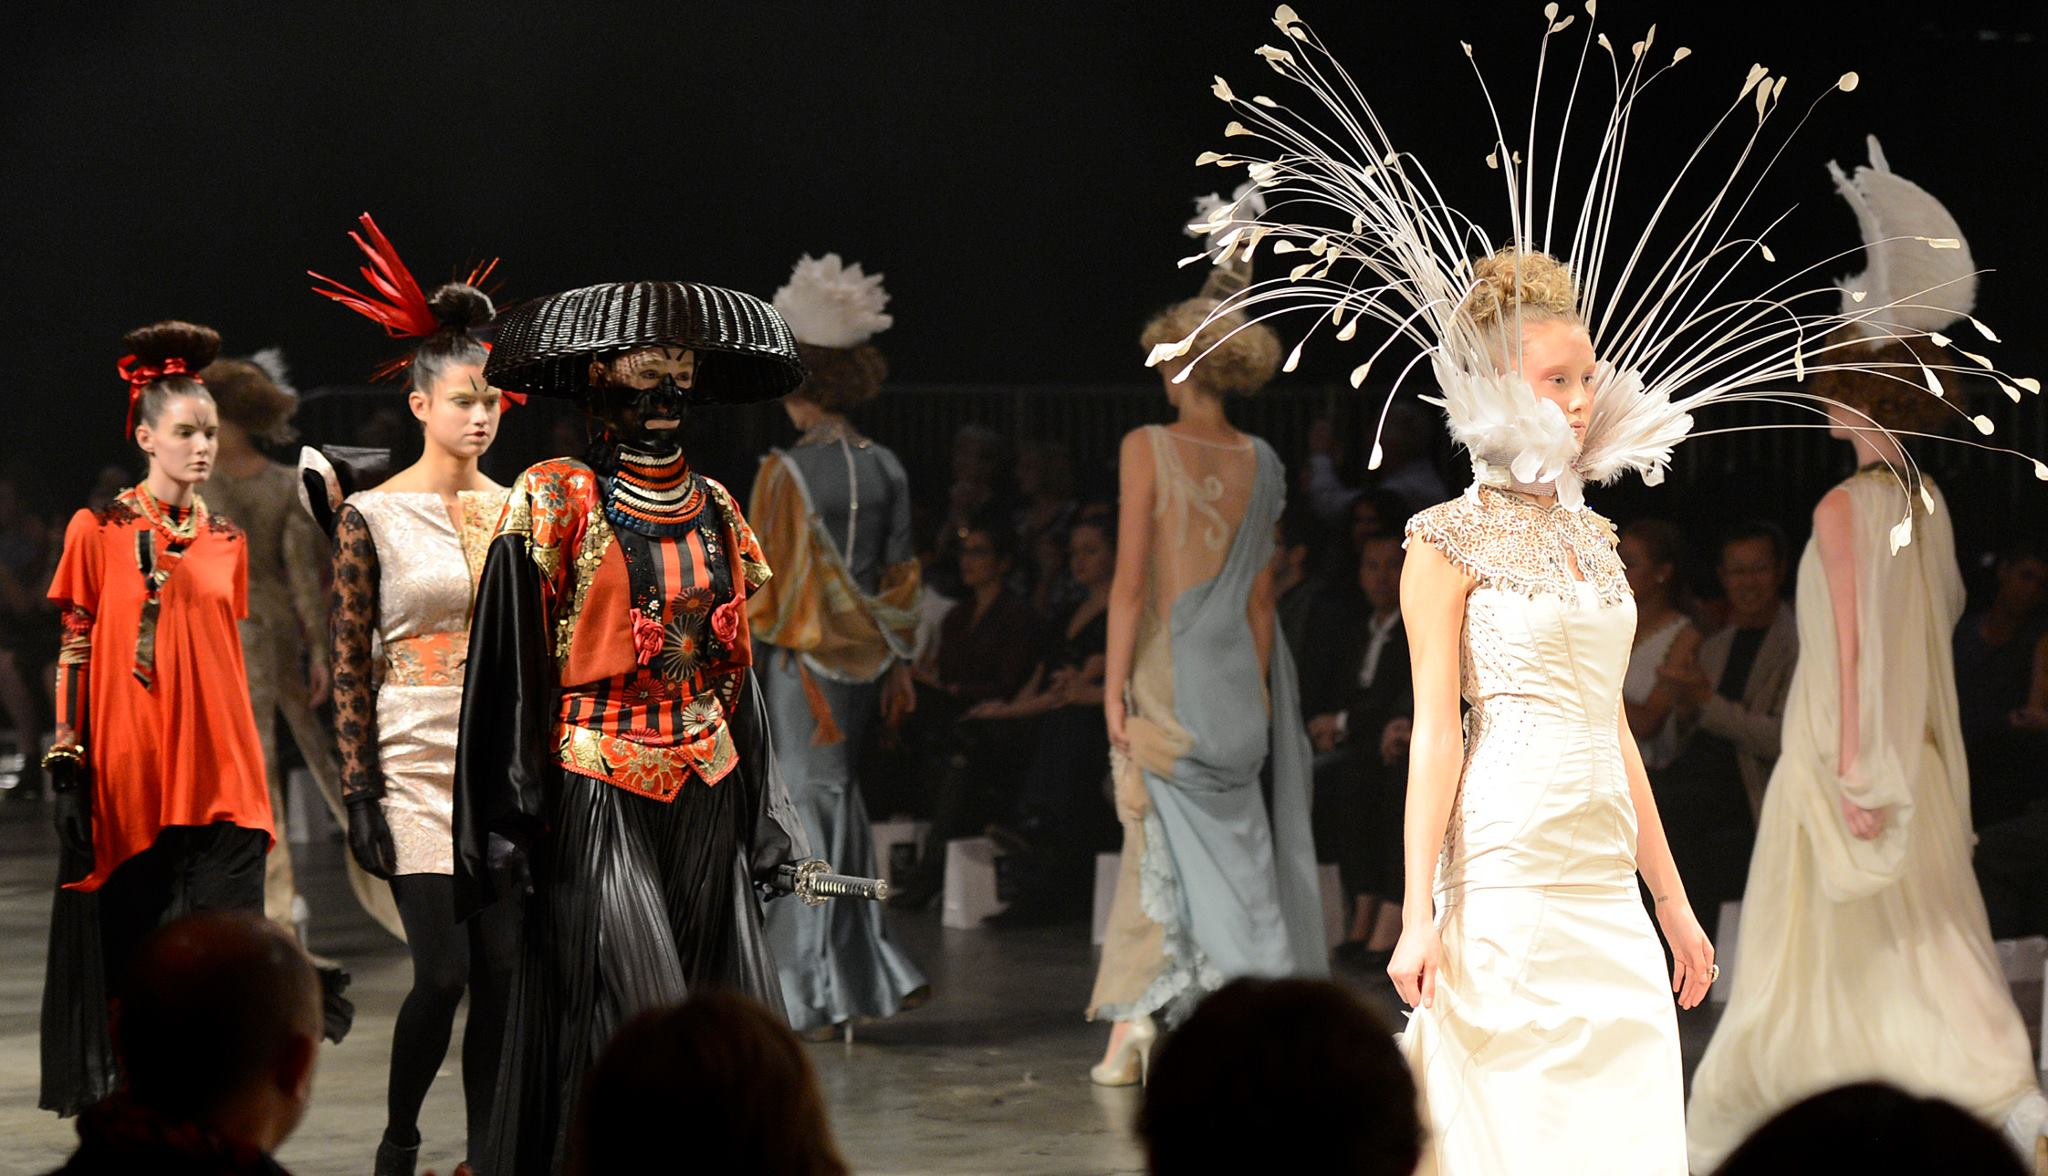 Melinda Looi at Perth Fashion Week 2012